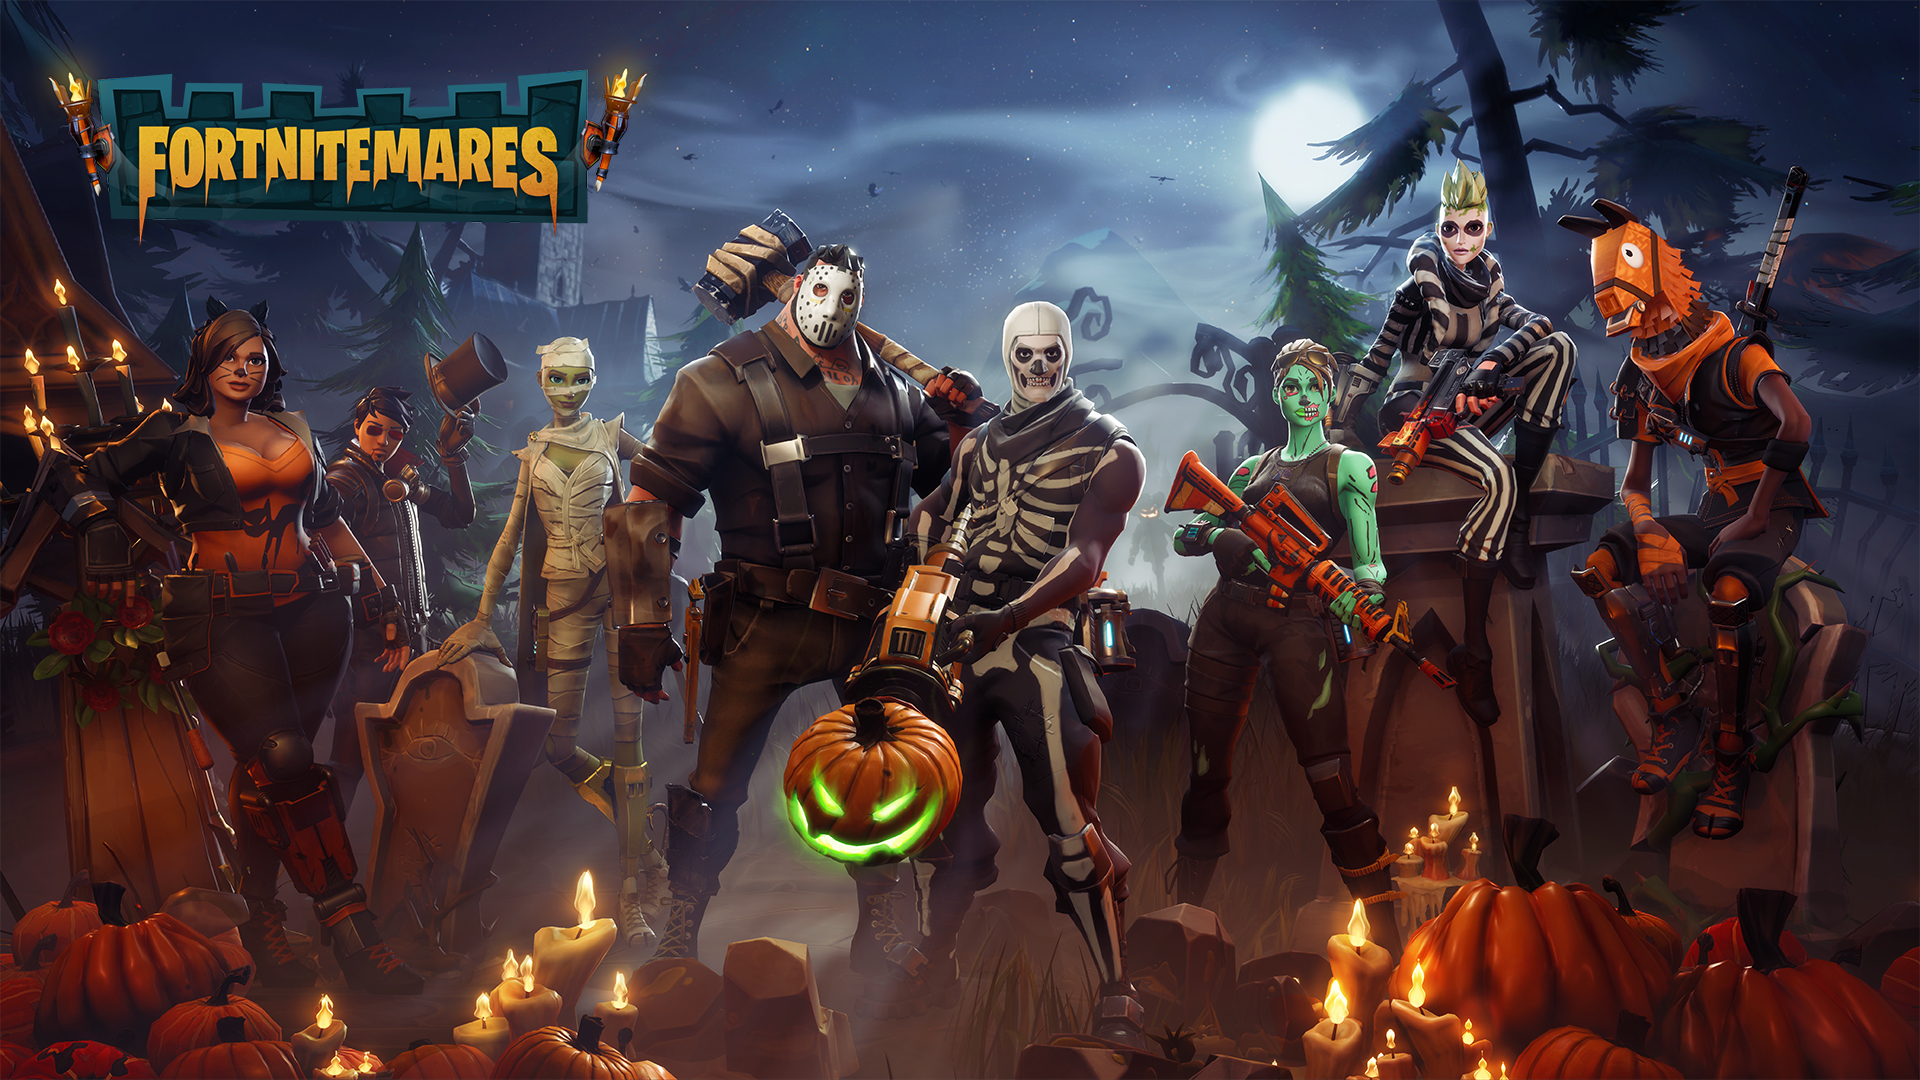 Fortnite gets Spooky with the Halloween Update